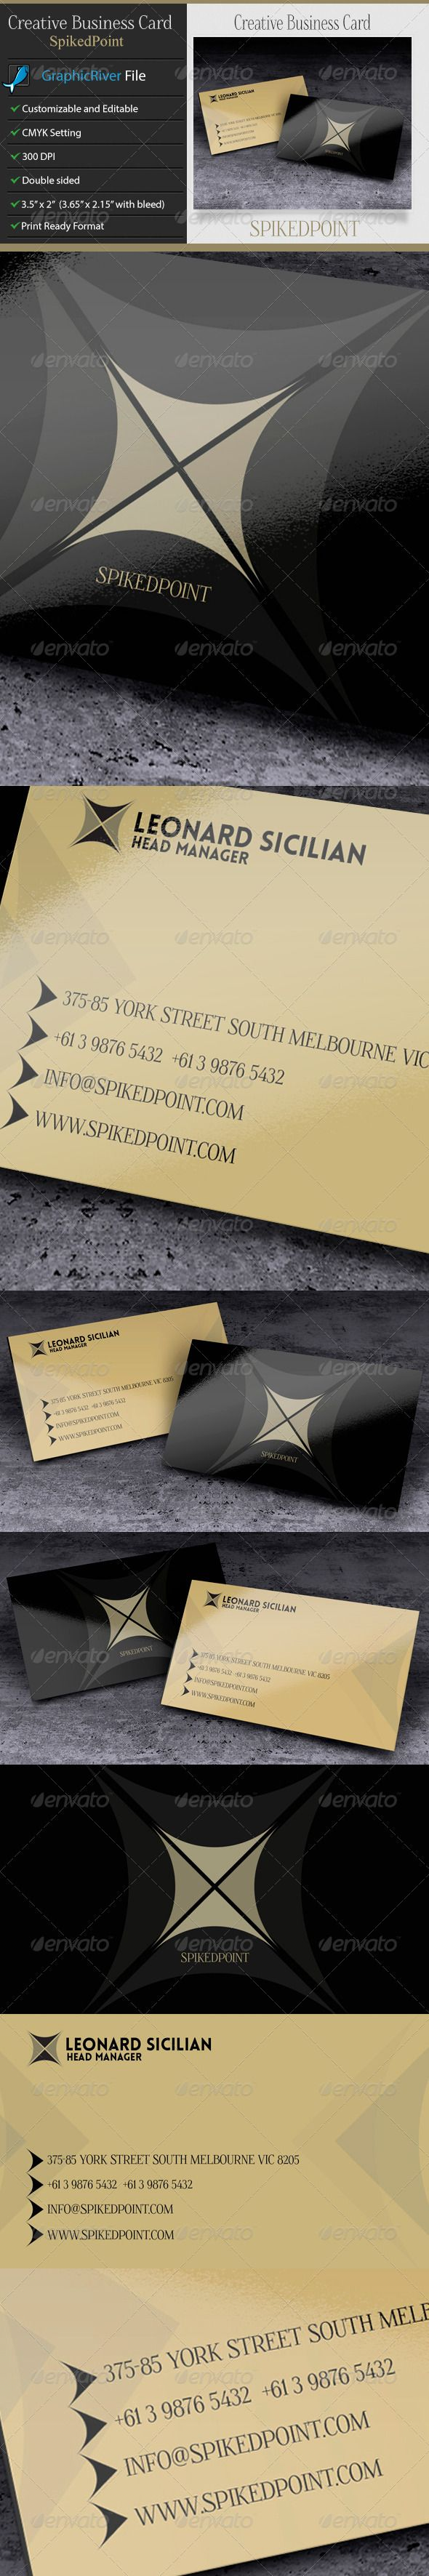 Creative or Corporate Business Card – SpikedPoint